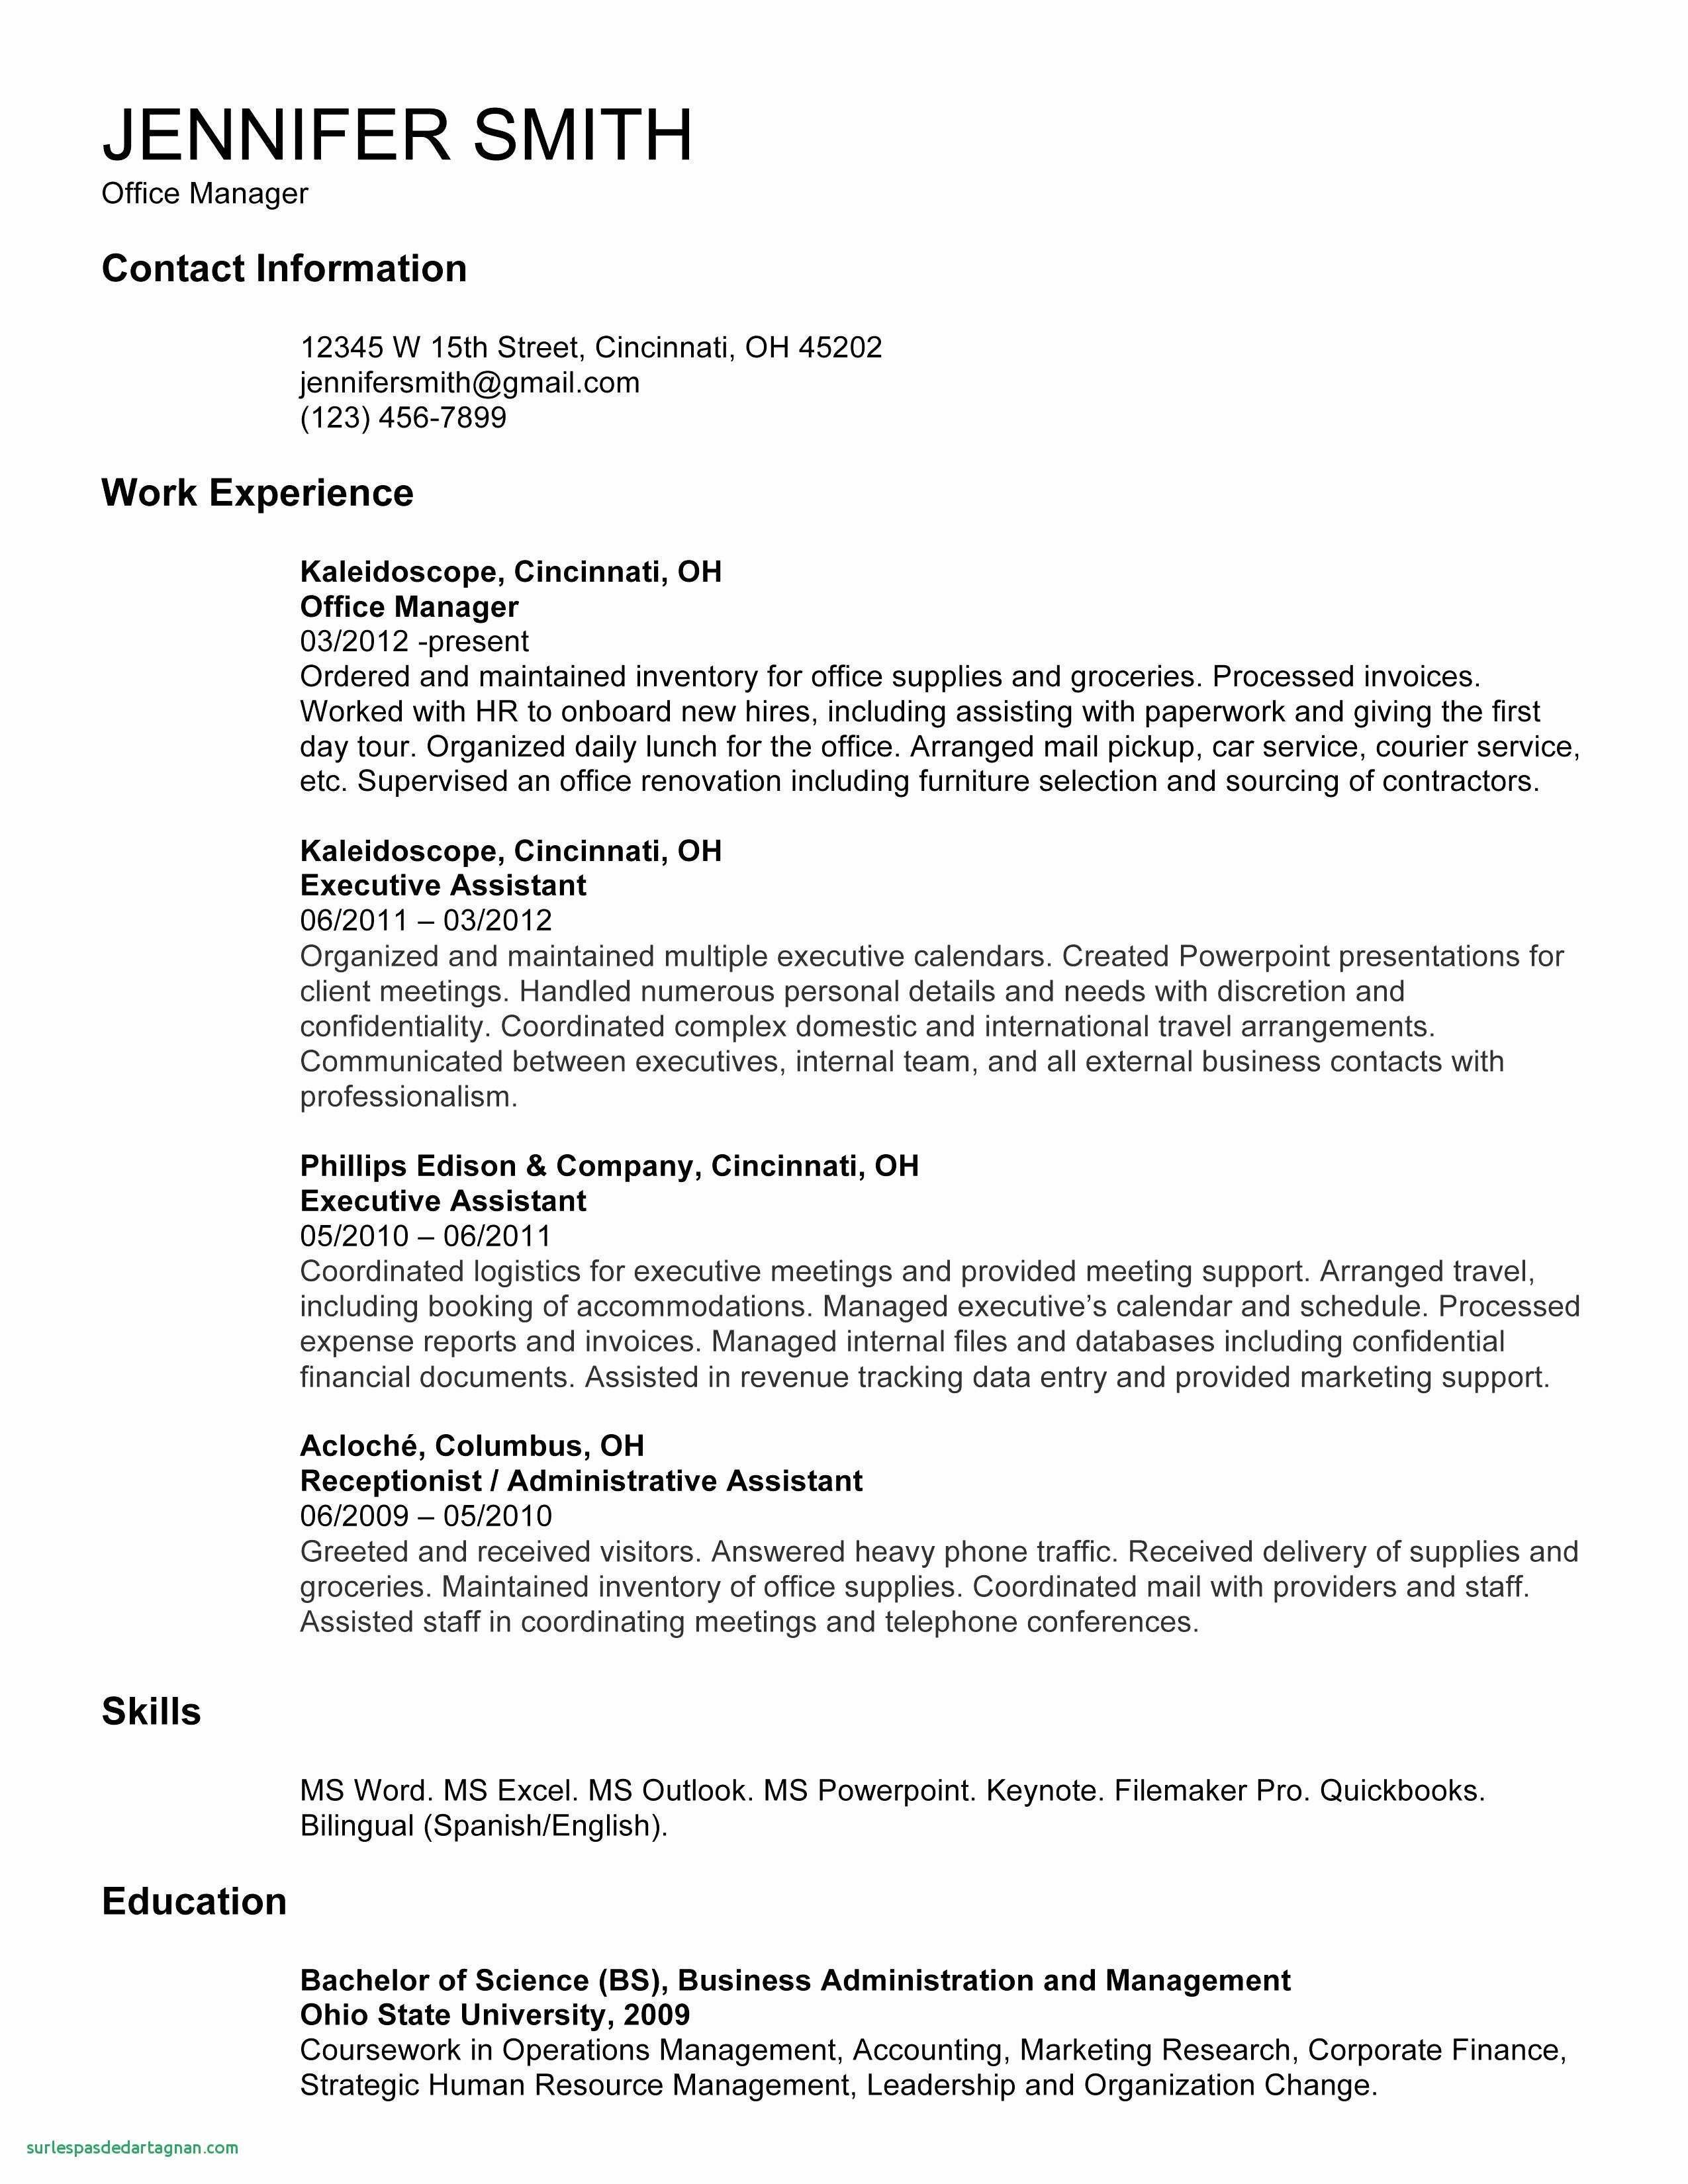 Resume Template for Scientist - Resume Template Download Free Unique ¢Ë†Å¡ Resume Template Download